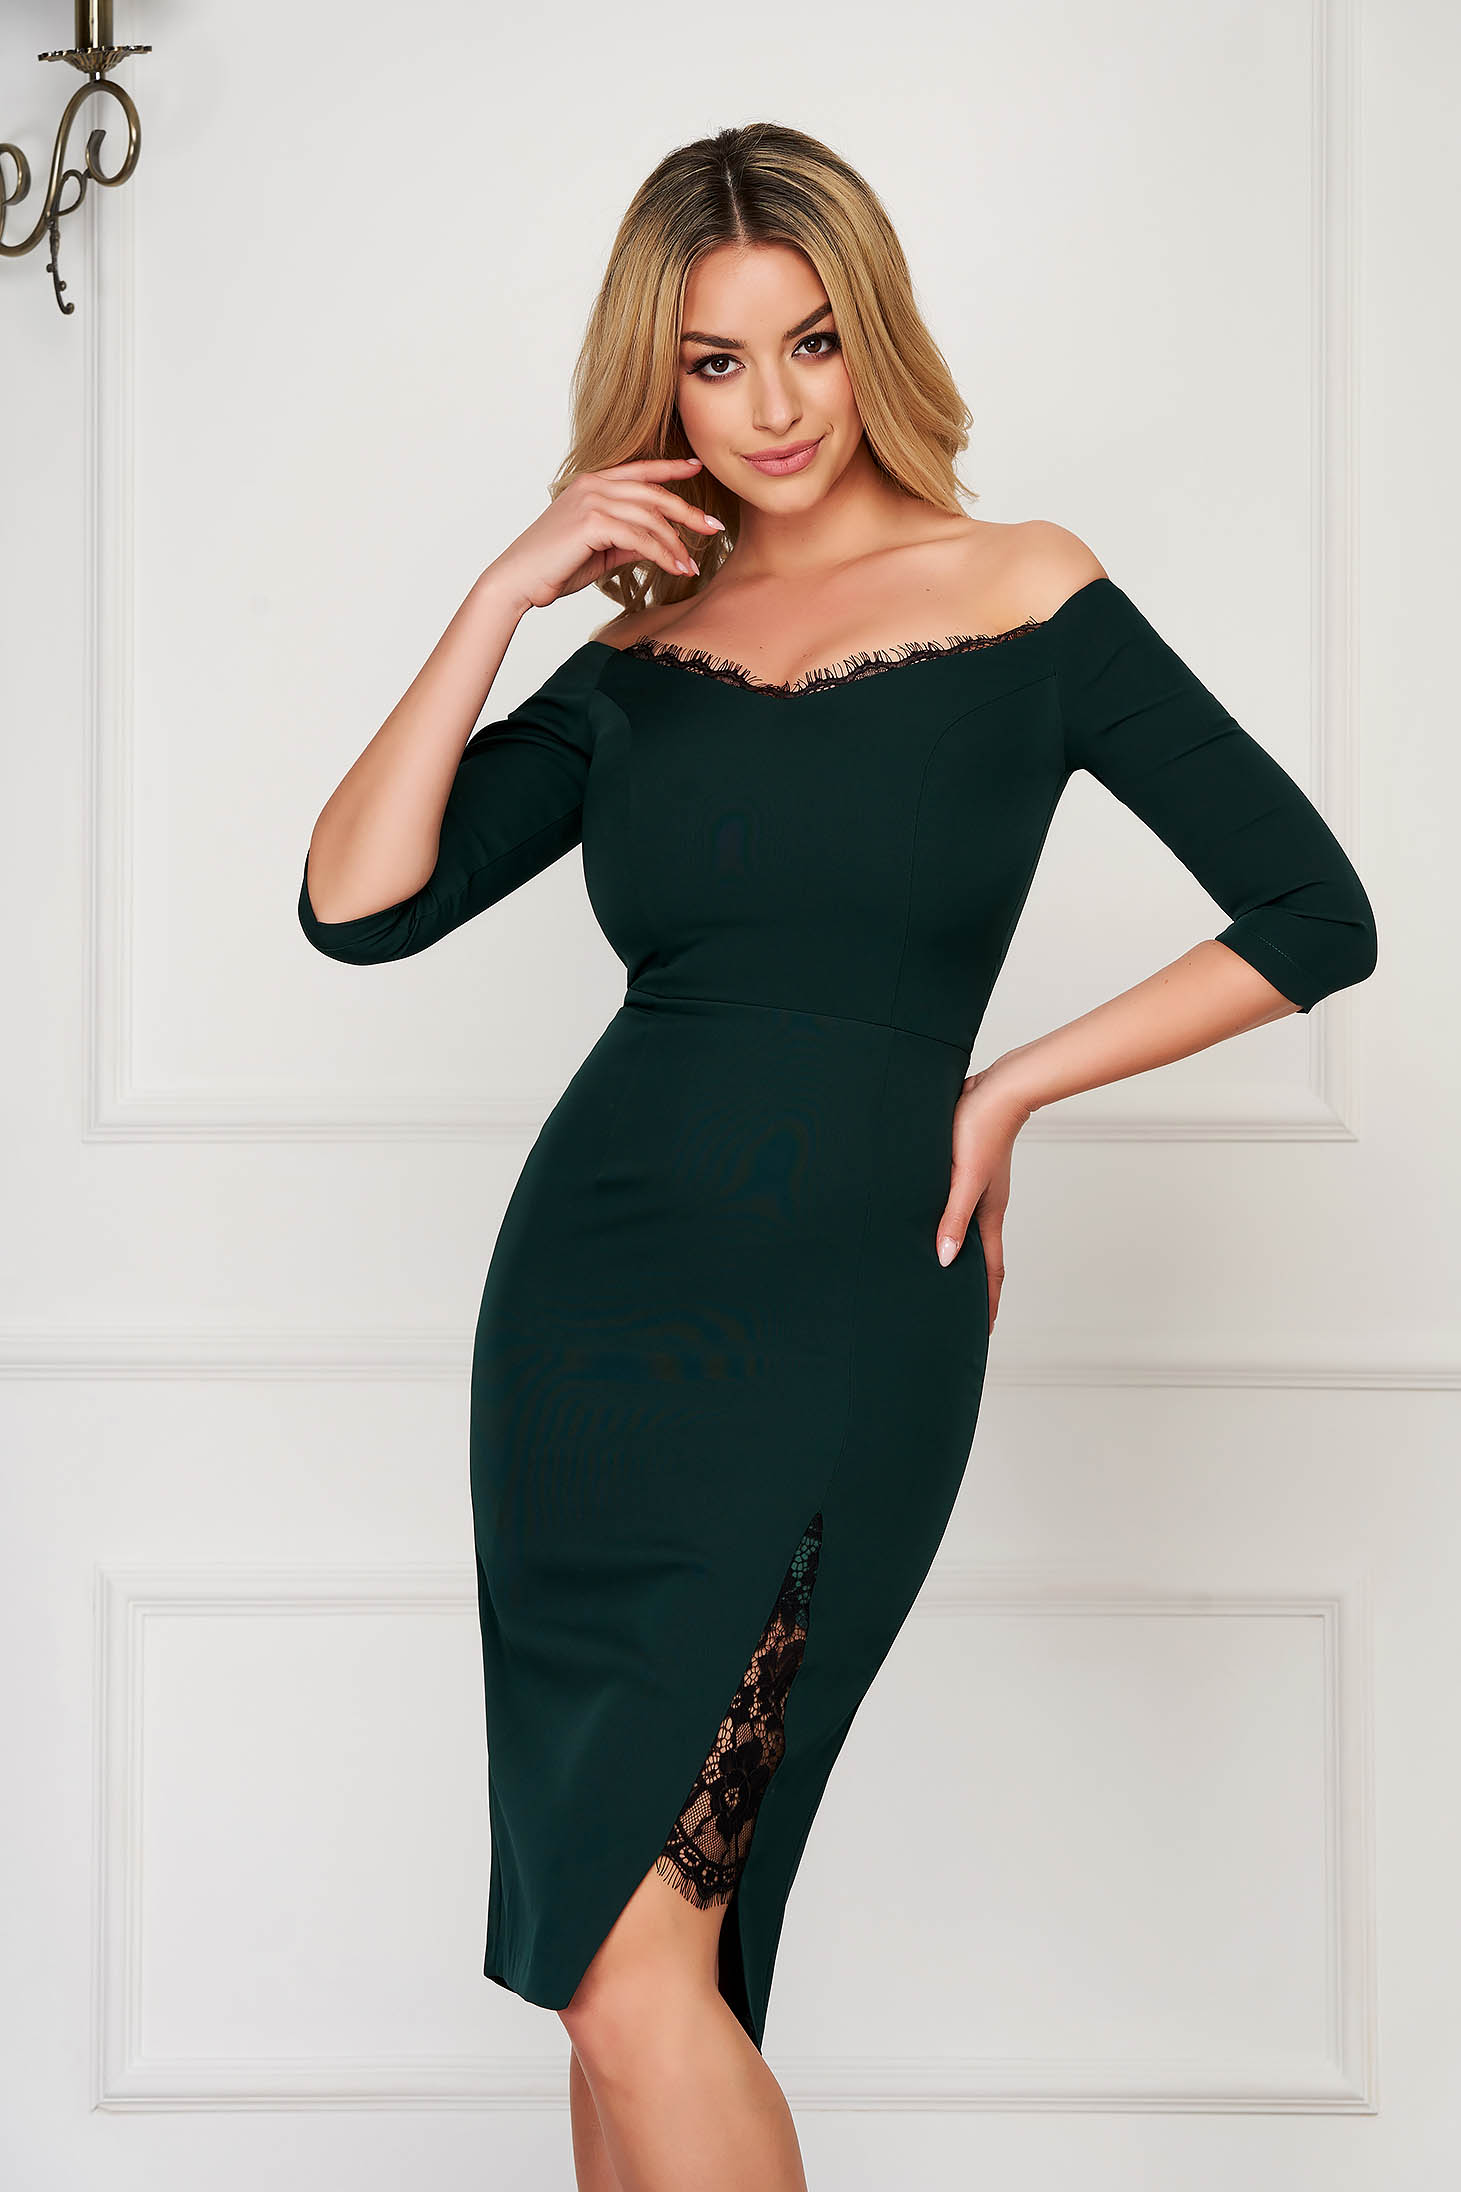 StarShinerS dirty green dress elegant midi pencil cloth thin fabric with 3/4 sleeves naked shoulders with lace details